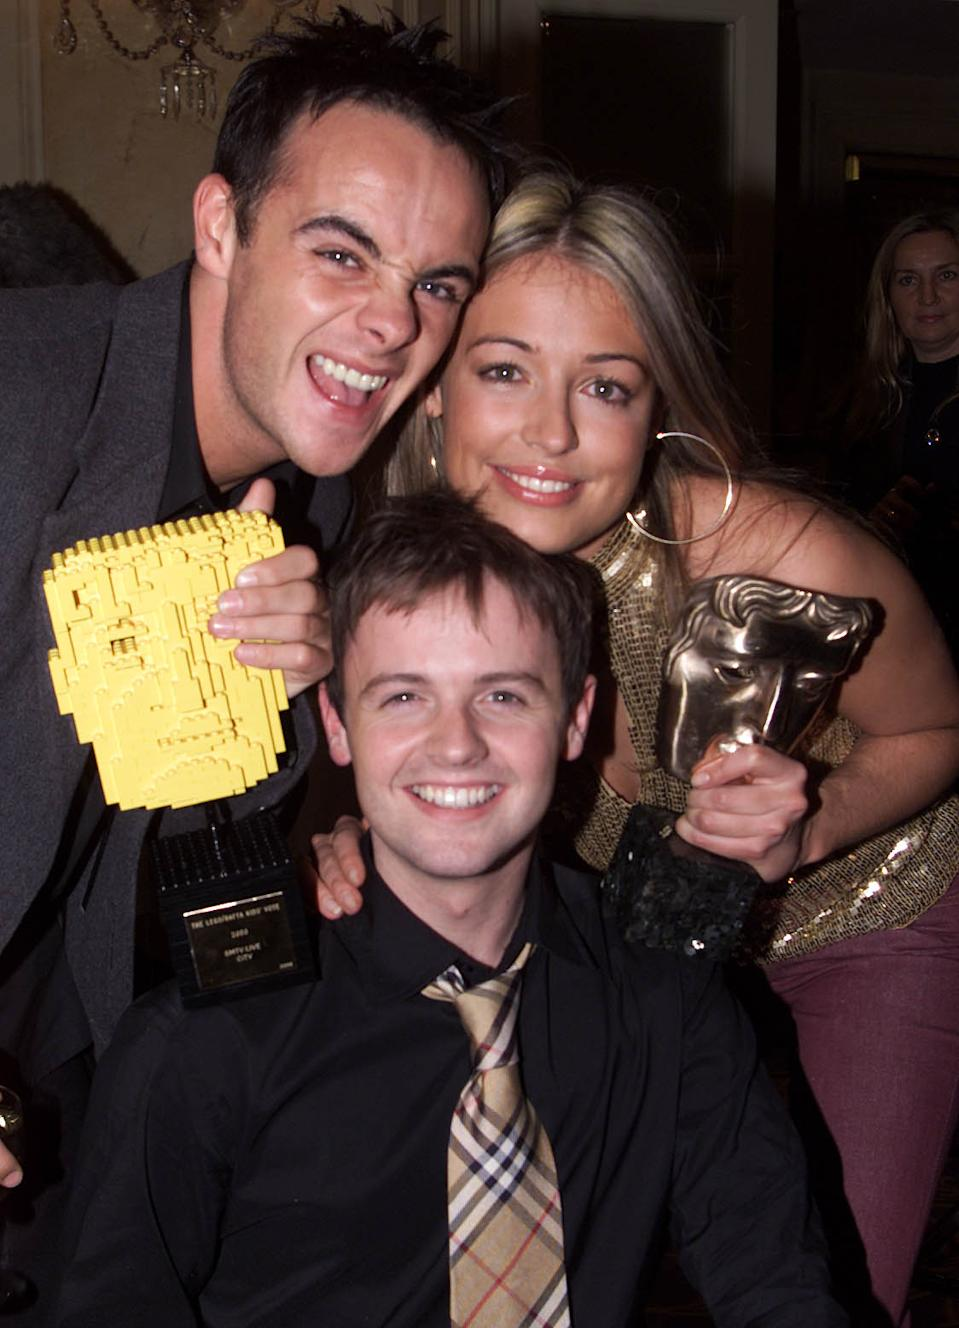 TV presenters Ant and Dec (Ant McPartlin (L) and Declan Donnelly (C)) and Cat Deeley (R) at the British Academy Children's Film & Television Awards at the Park Lane Hilton, London on 24 November, 2002. SM:TV won Best Entertainment Award and the Lego Kid's Vote award. (Photo by Gareth Davies/Getty Images)